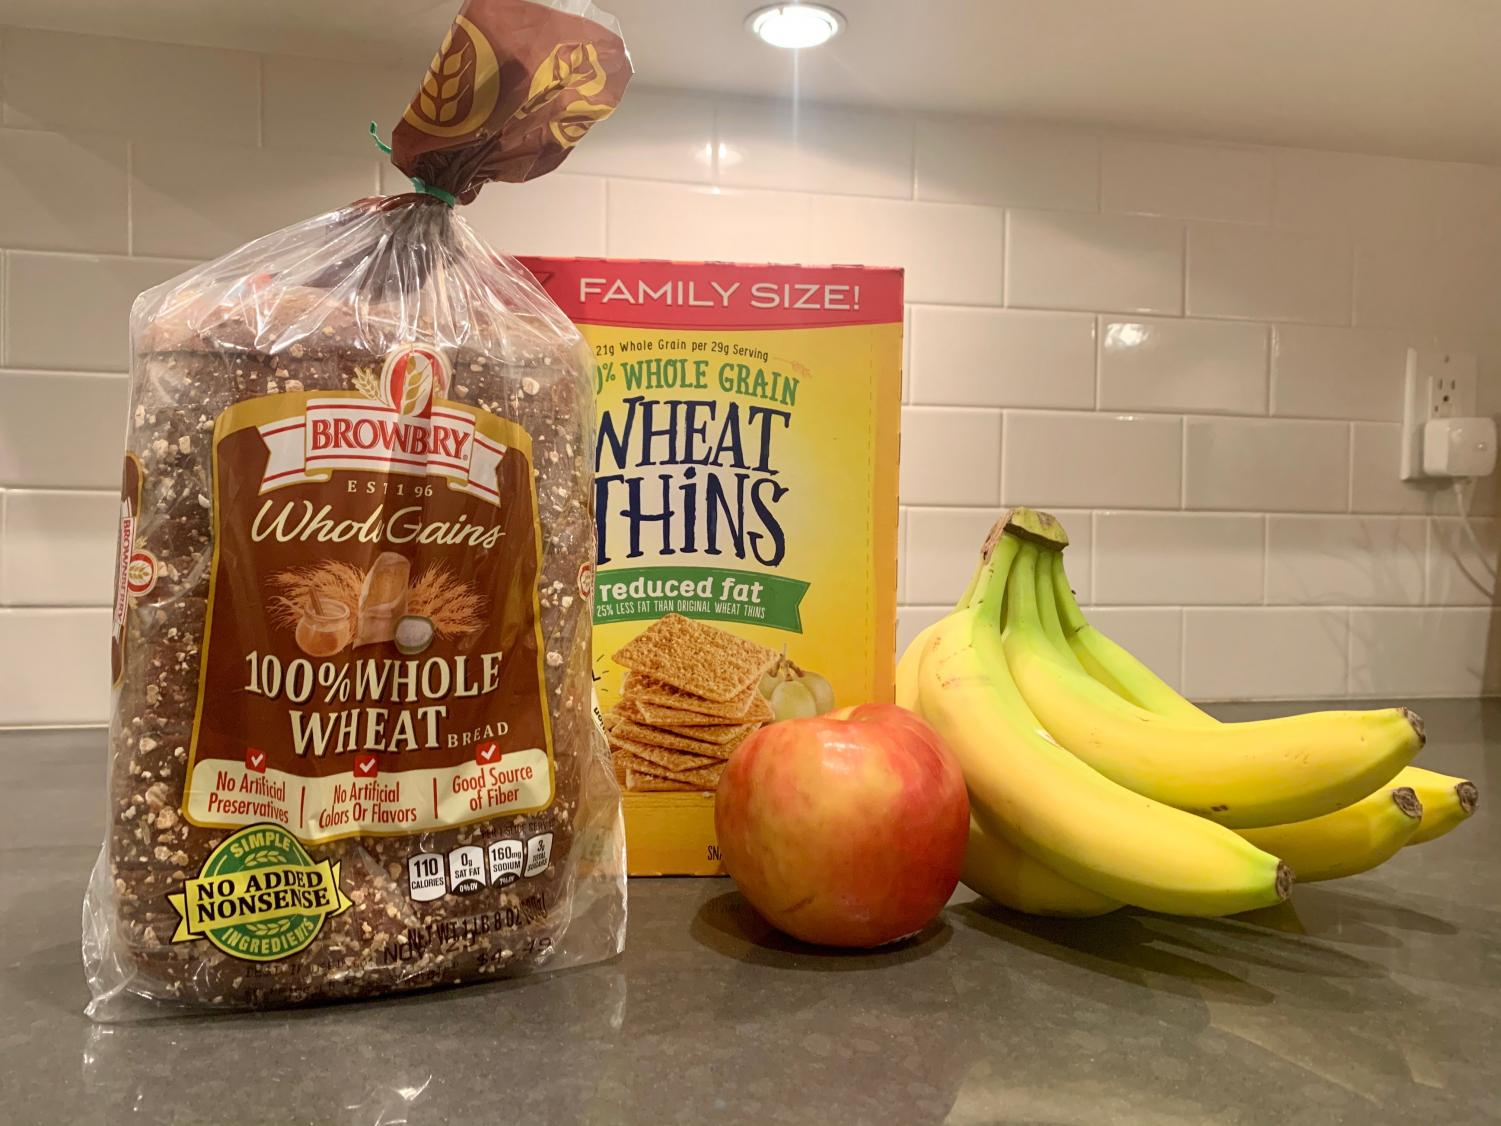 Whole grains, fruits and vegetables have been recommended as some of the best foods to eat while achieving a healthy lifestyle.